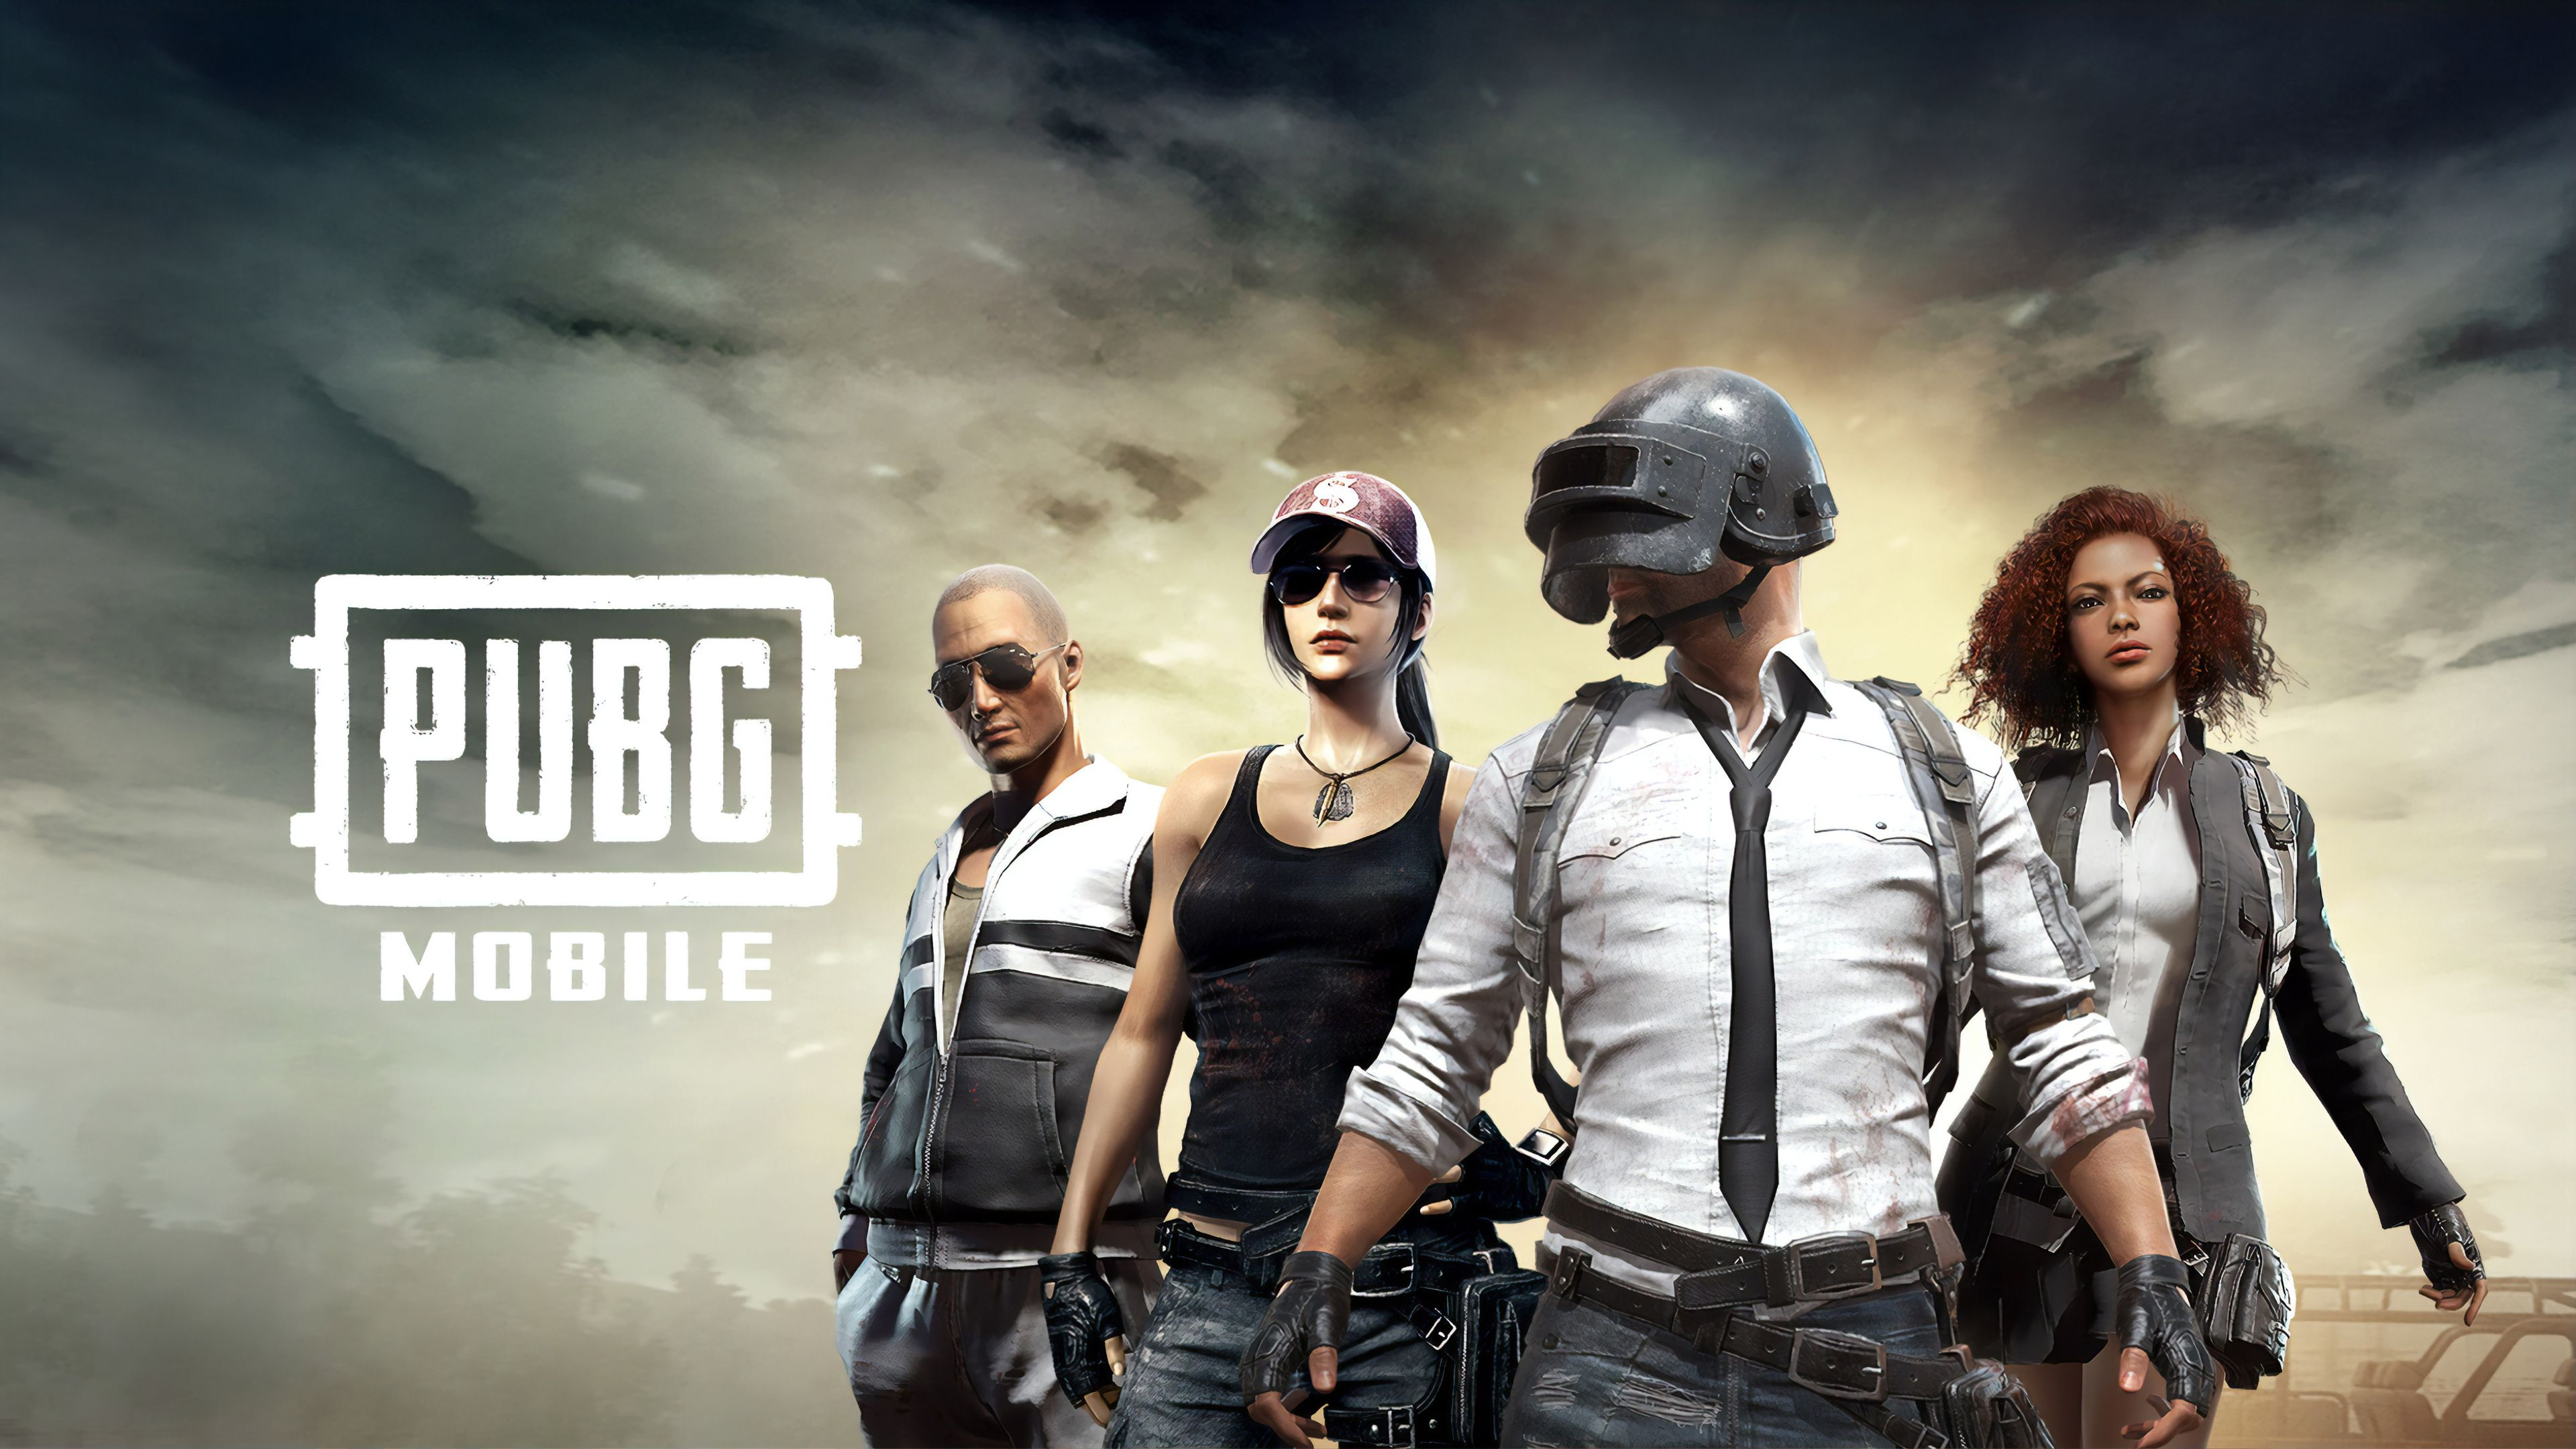 Pubg 4k Game Wallpapers Top Free Pubg 4k Game Backgrounds Wallpaperaccess